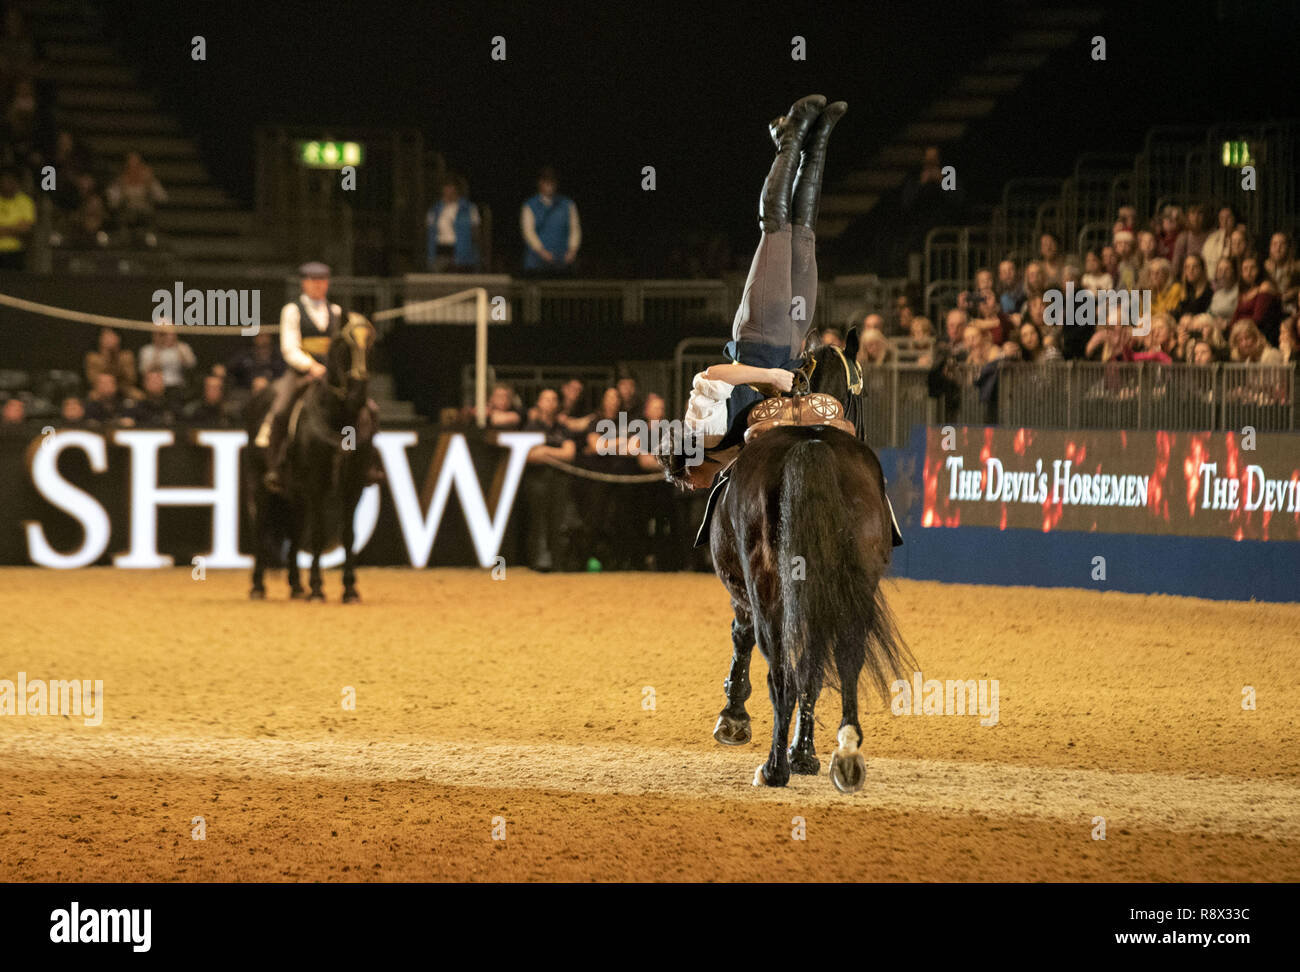 The Devil's Horsemen perform during day one of the London International Horse Show at London Olympia. - Stock Image